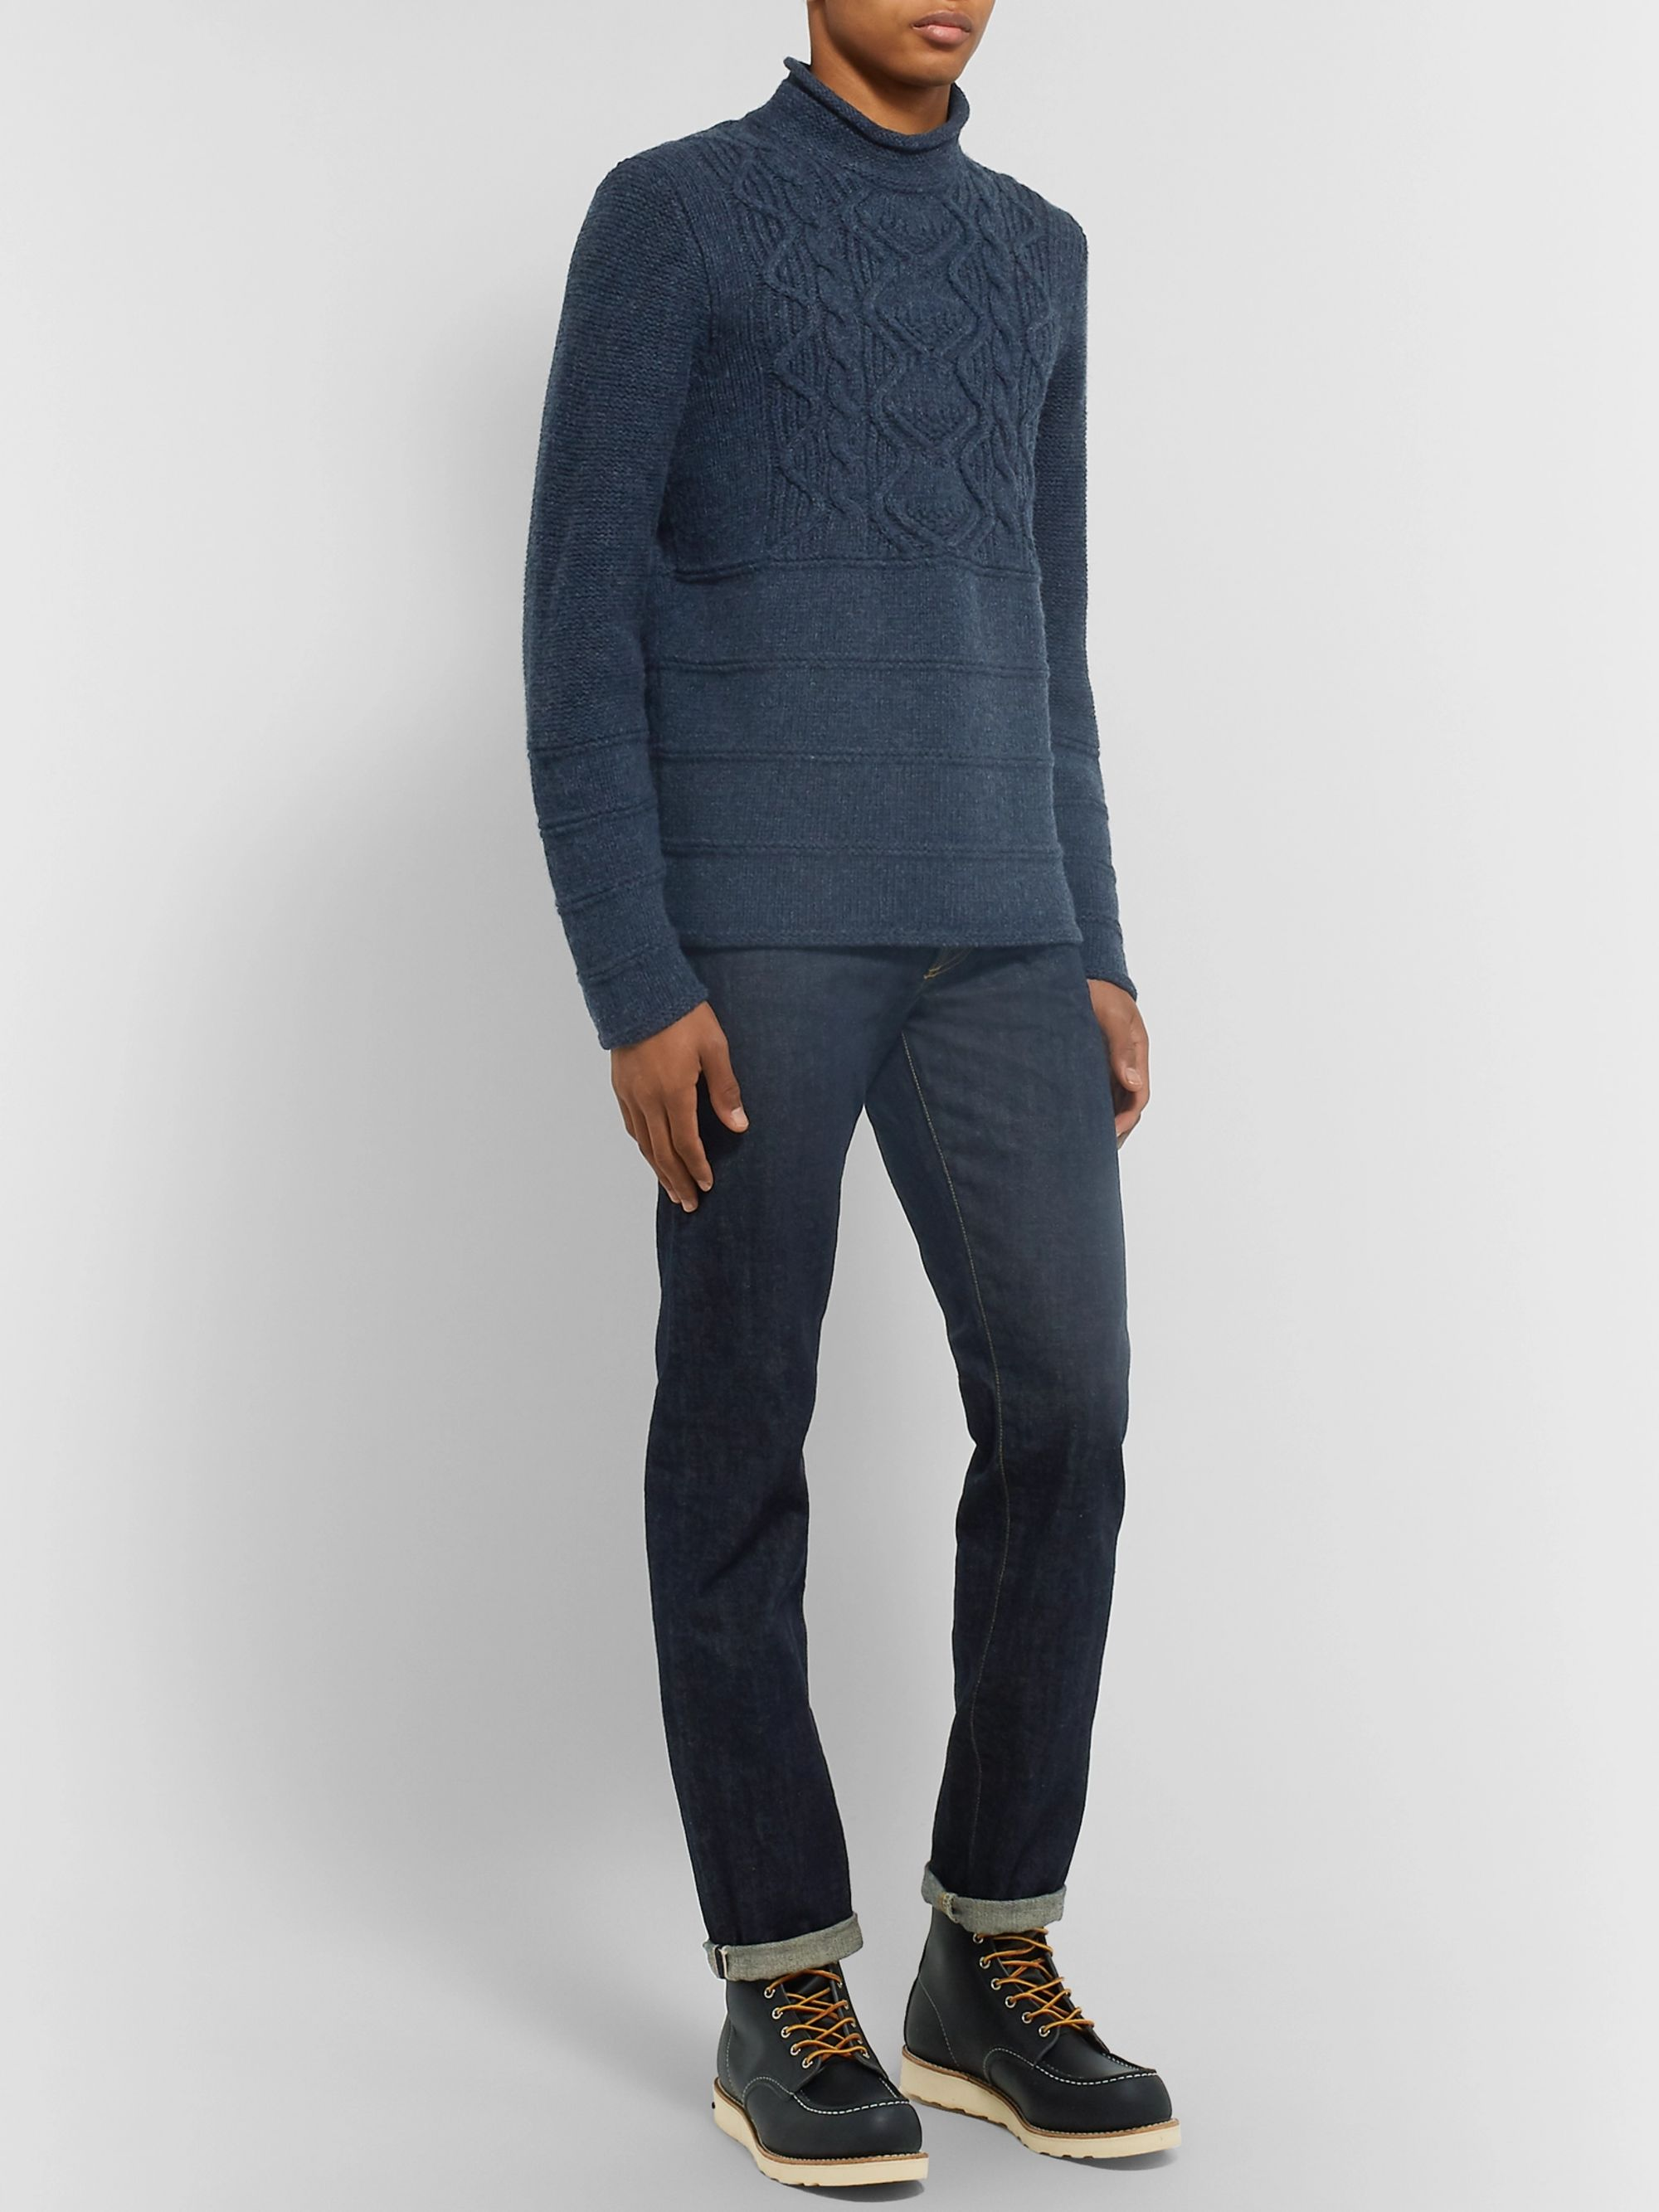 Inis Meáin Cable-Knit Merino Wool Sweater